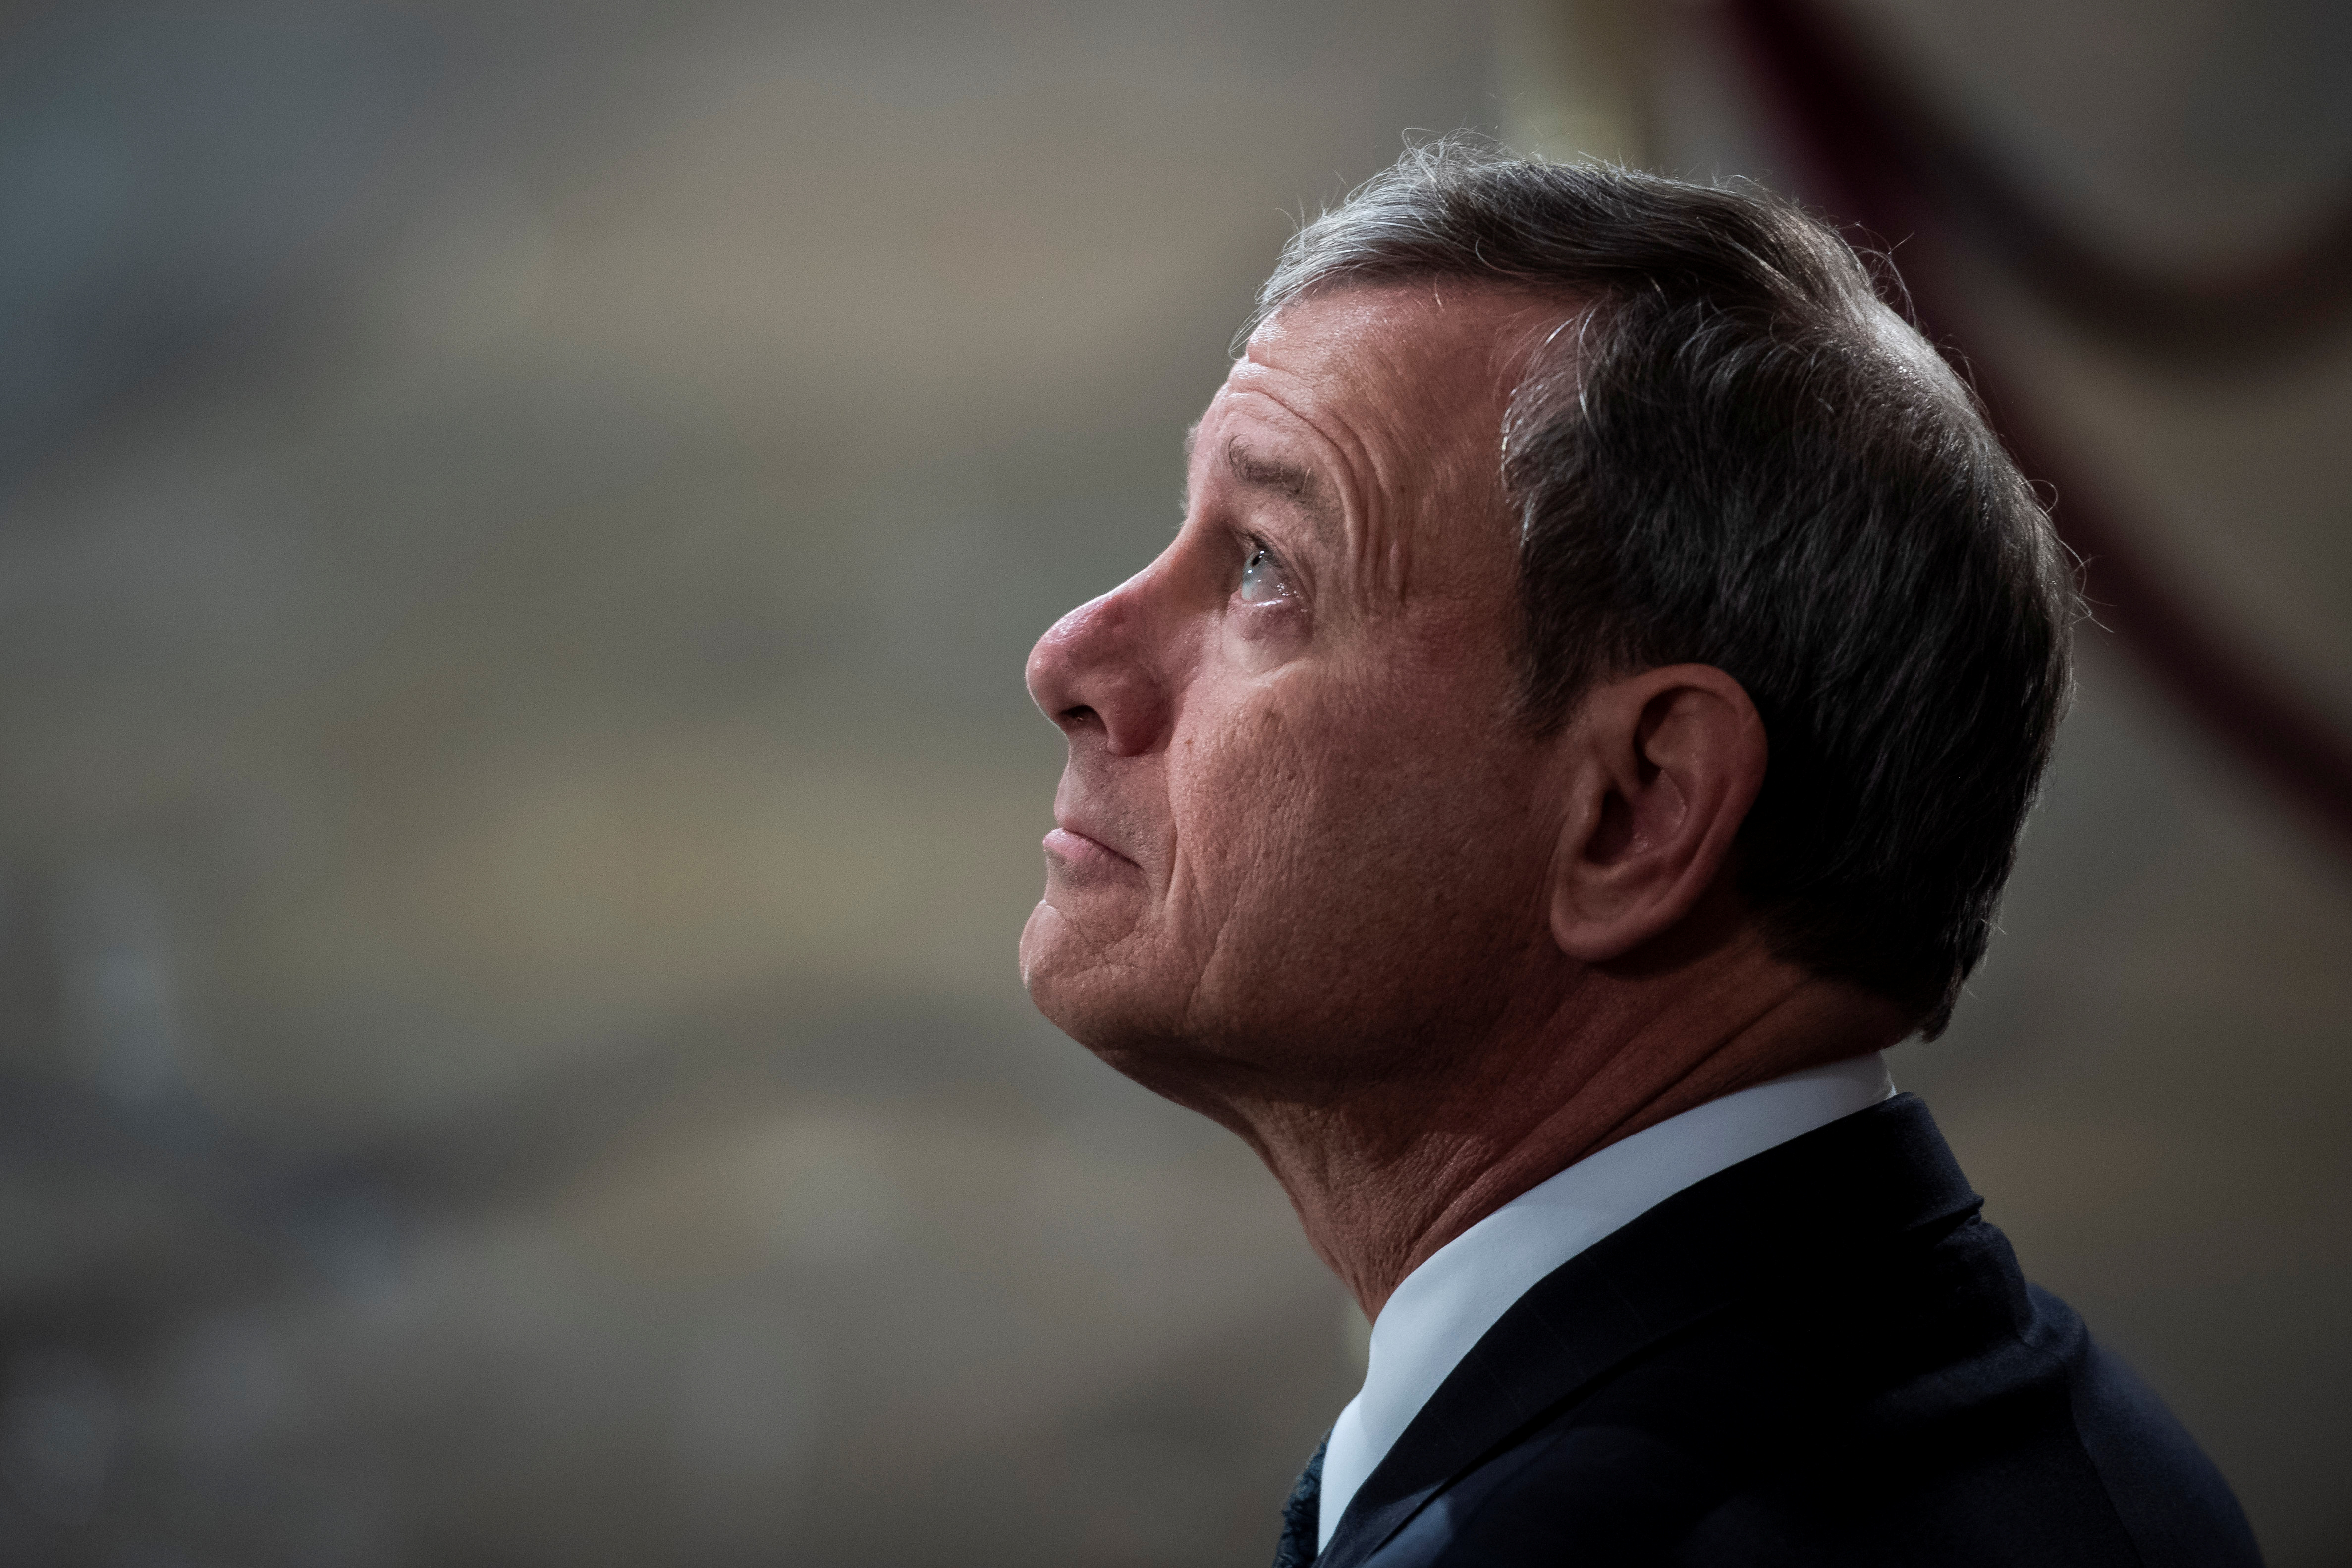 Supreme Court Chief Justice of the United States John G. Roberts, Jr. waits for the arrival of Former president George H.W. Bush to lie in State at the U.S. Capitol Rotunda on Capitol Hill on Monday, Dec. 03, 2018 in Washington, DC. Jabin Botsford/Pool via Reuters